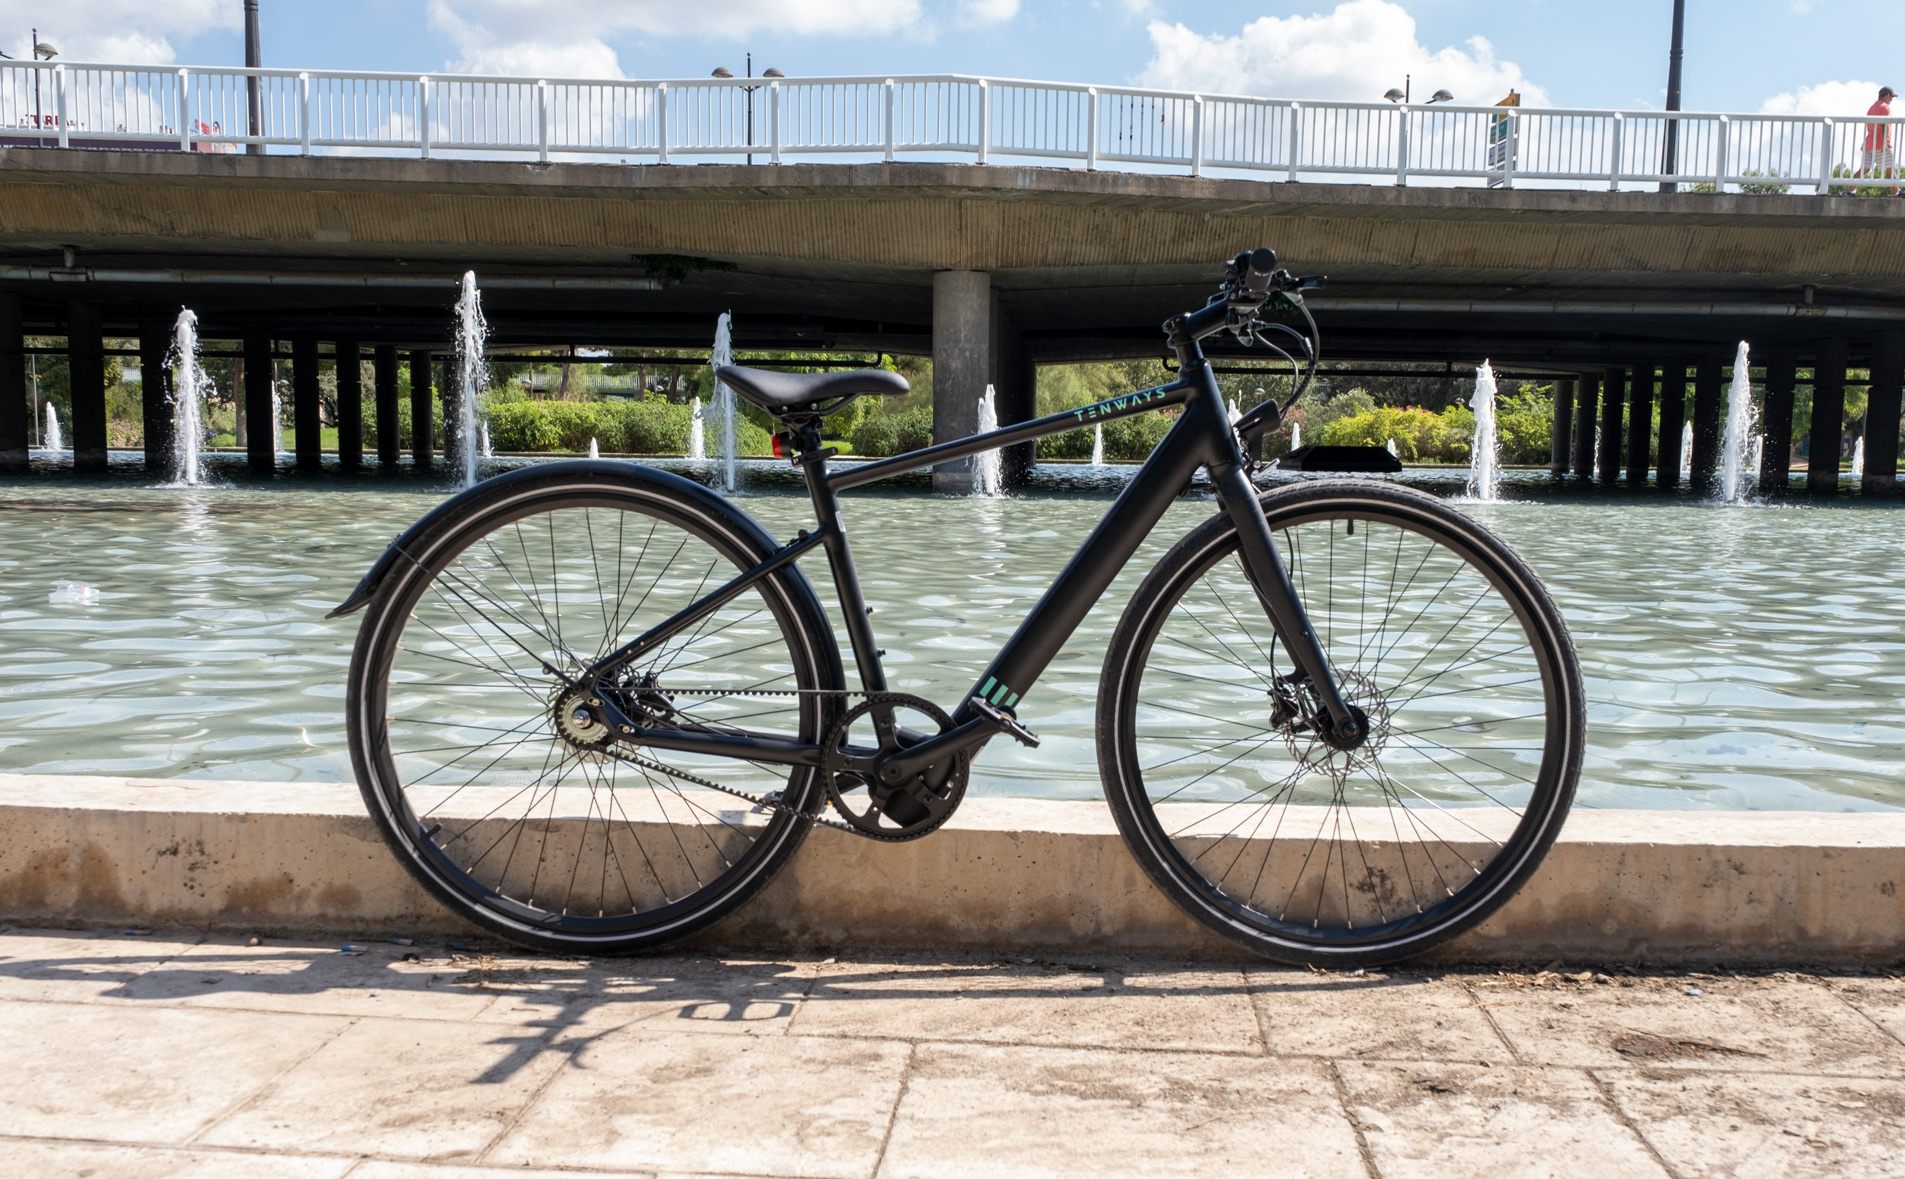 Tenways' e-bike debut blends value with style